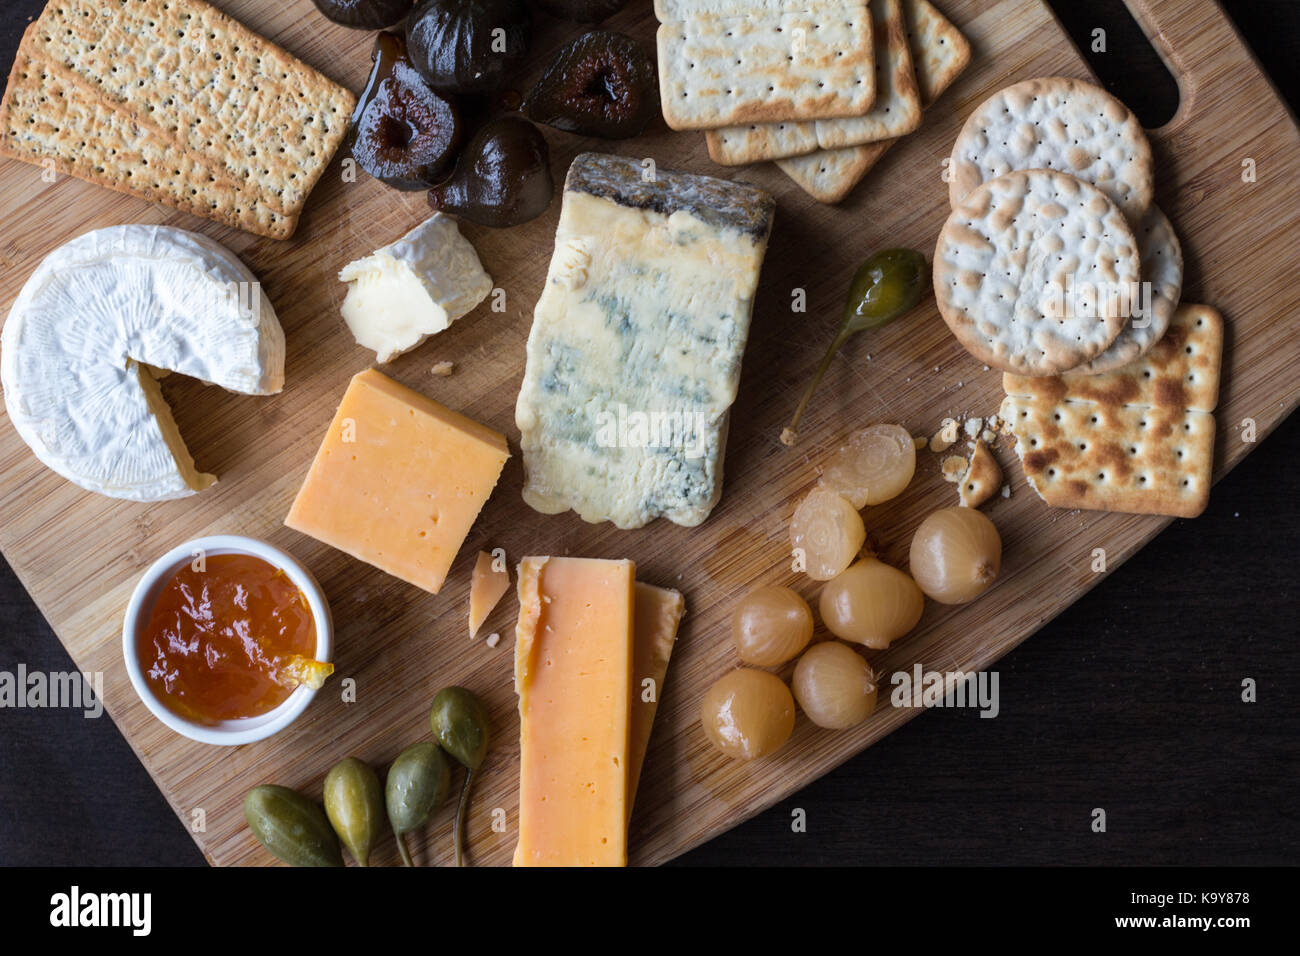 Cheese board serving with figs, caper berries, jam and pickled onions. Top view photograph with copy space - Stock Image